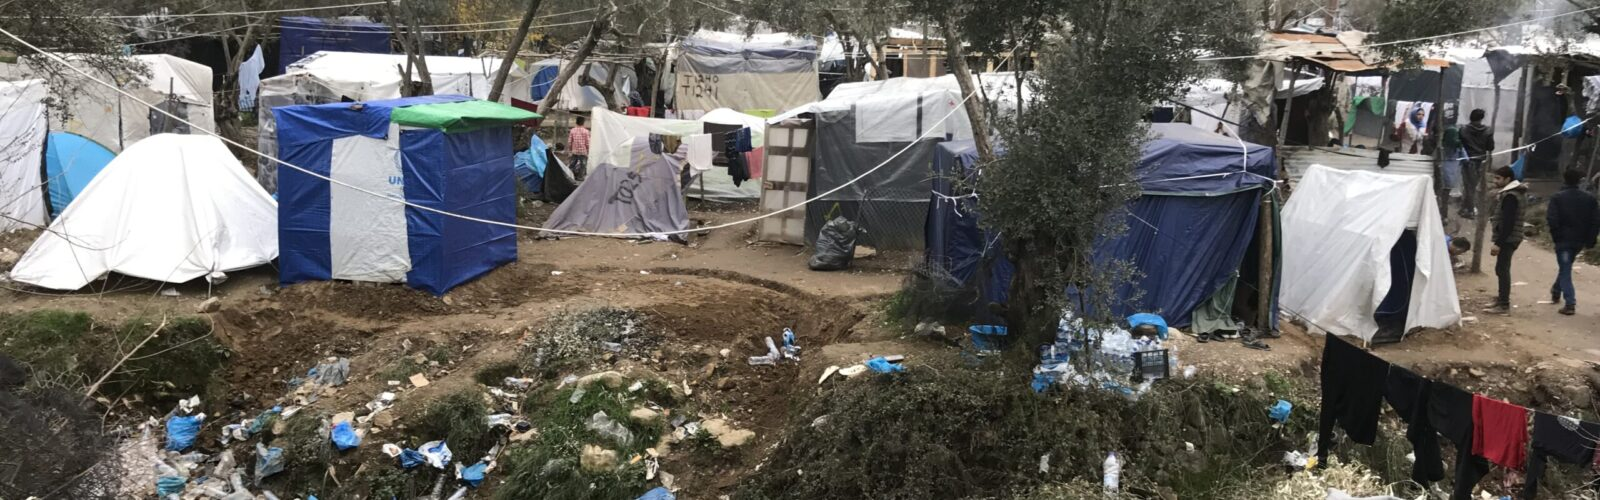 Human Rights Concerns in Lesvos, Greece